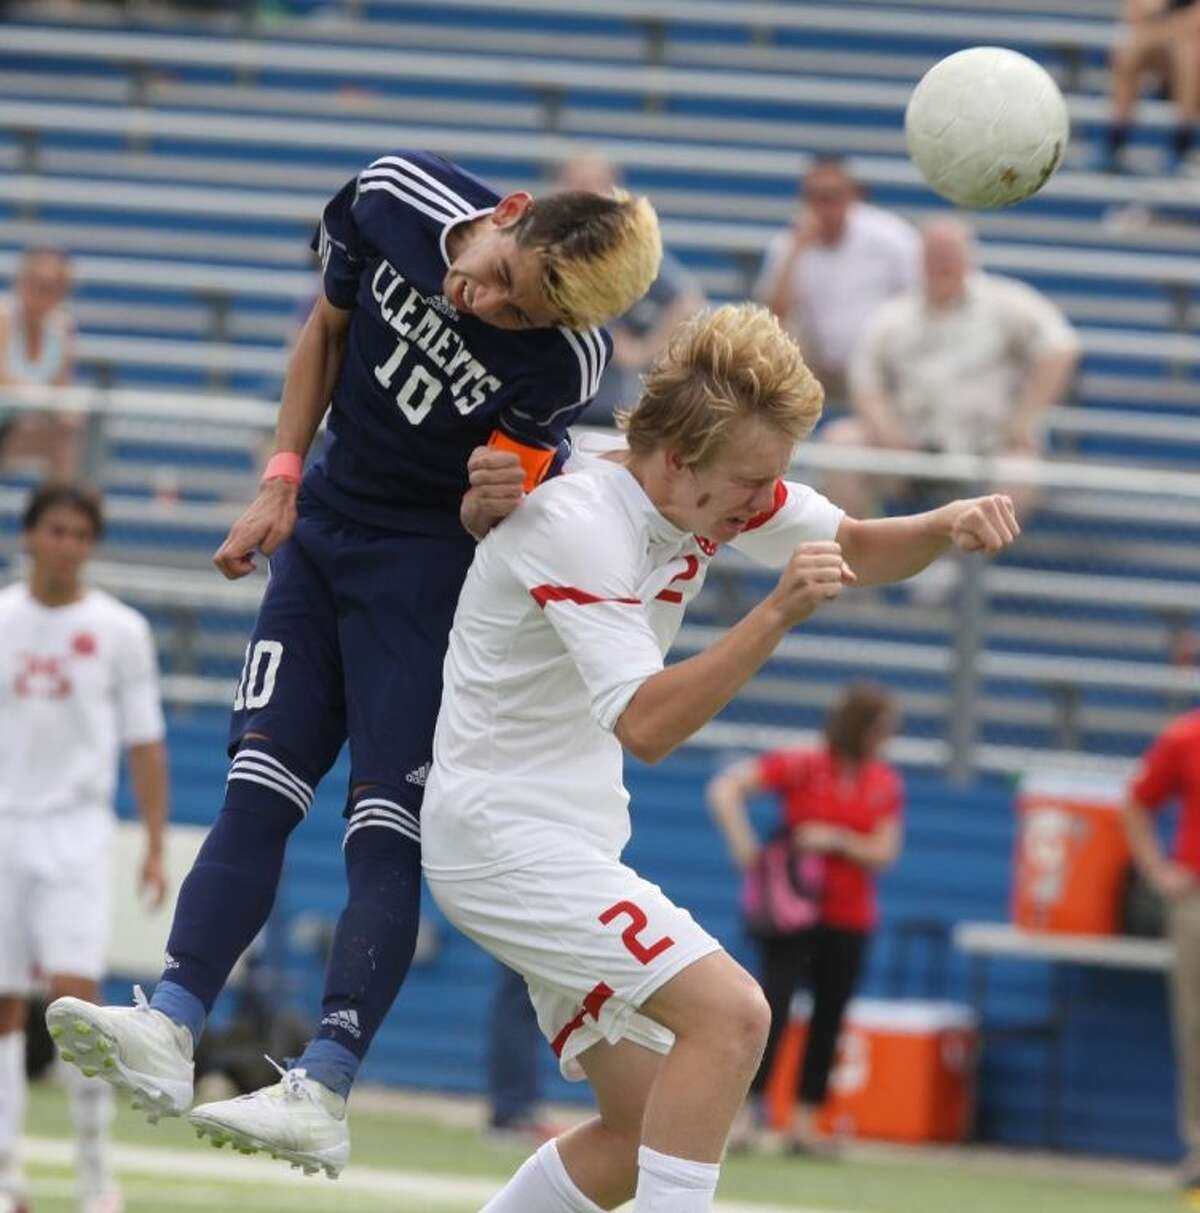 Clements' Trinidad Luna wins a ball against Coppell's Drew Brinda during the 5A Boys State Championship, April 19 at Birkelbach Field in Georgetown. Luna was voted District 23-5A MVP. Visit HCNPics.com for more photos.